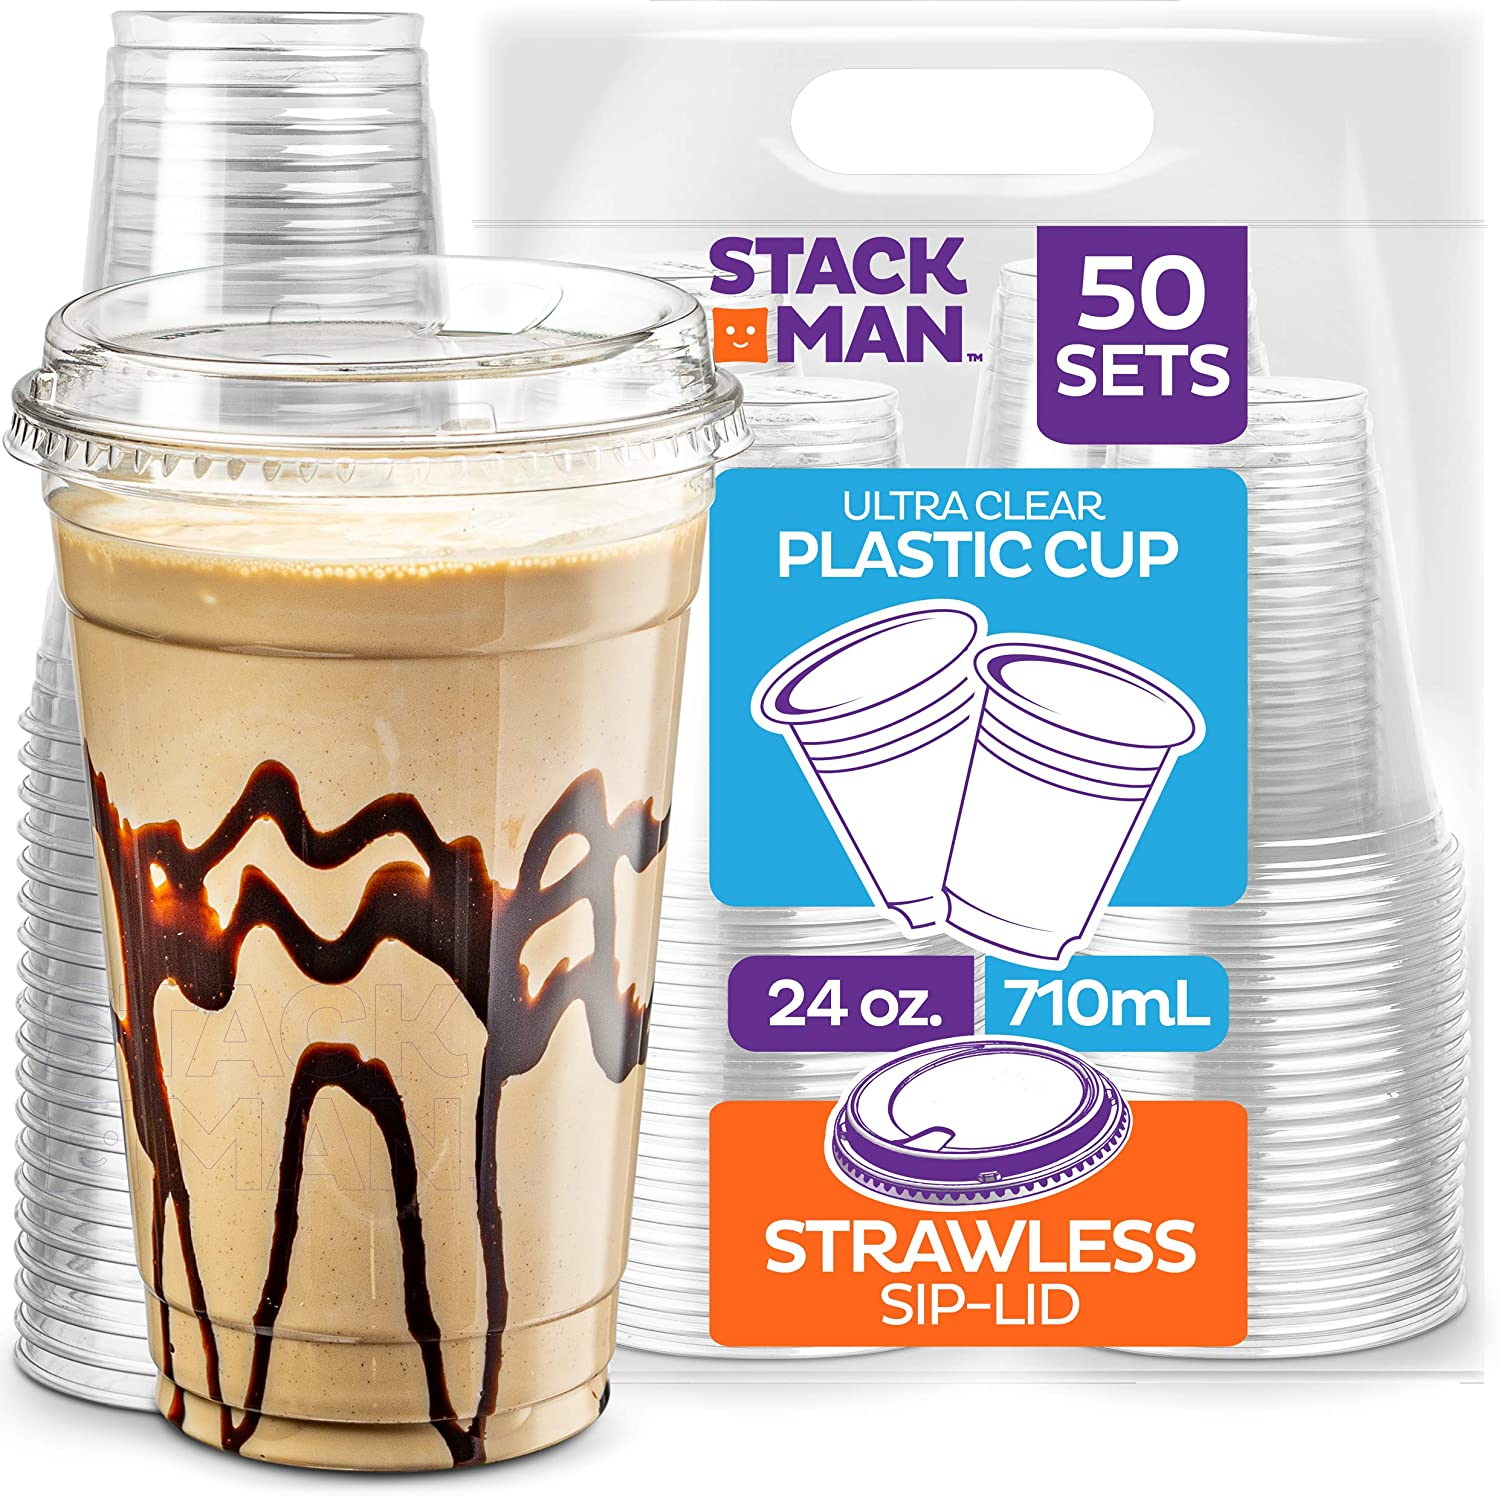 24 oz. Clear Cups with Strawless Sip-Lids, [50 Sets] PET Crystal Clear Disposable 24oz Plastic Cups with Lids